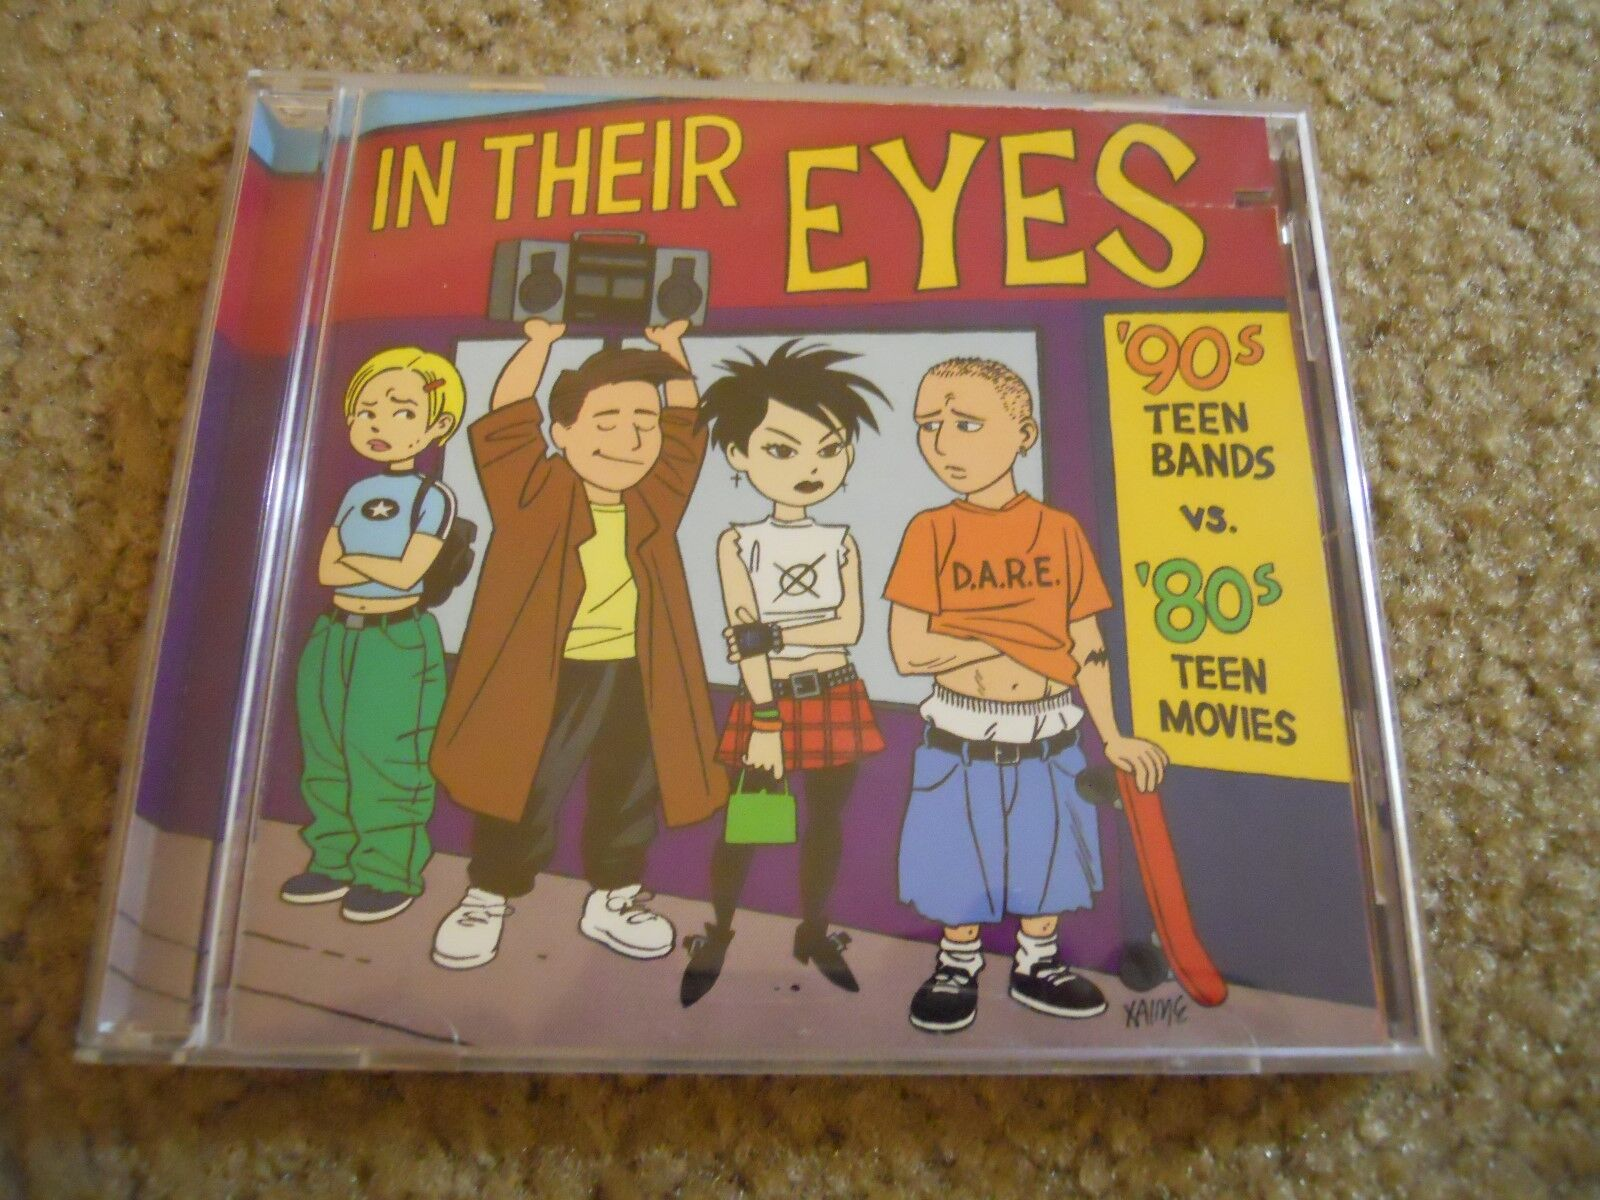 IN THEIR EYES 90 s TEEN BANDS Vs. 80 s TEEN MOVIES THE DONNAS/PHANTOM PLANET - $15.00